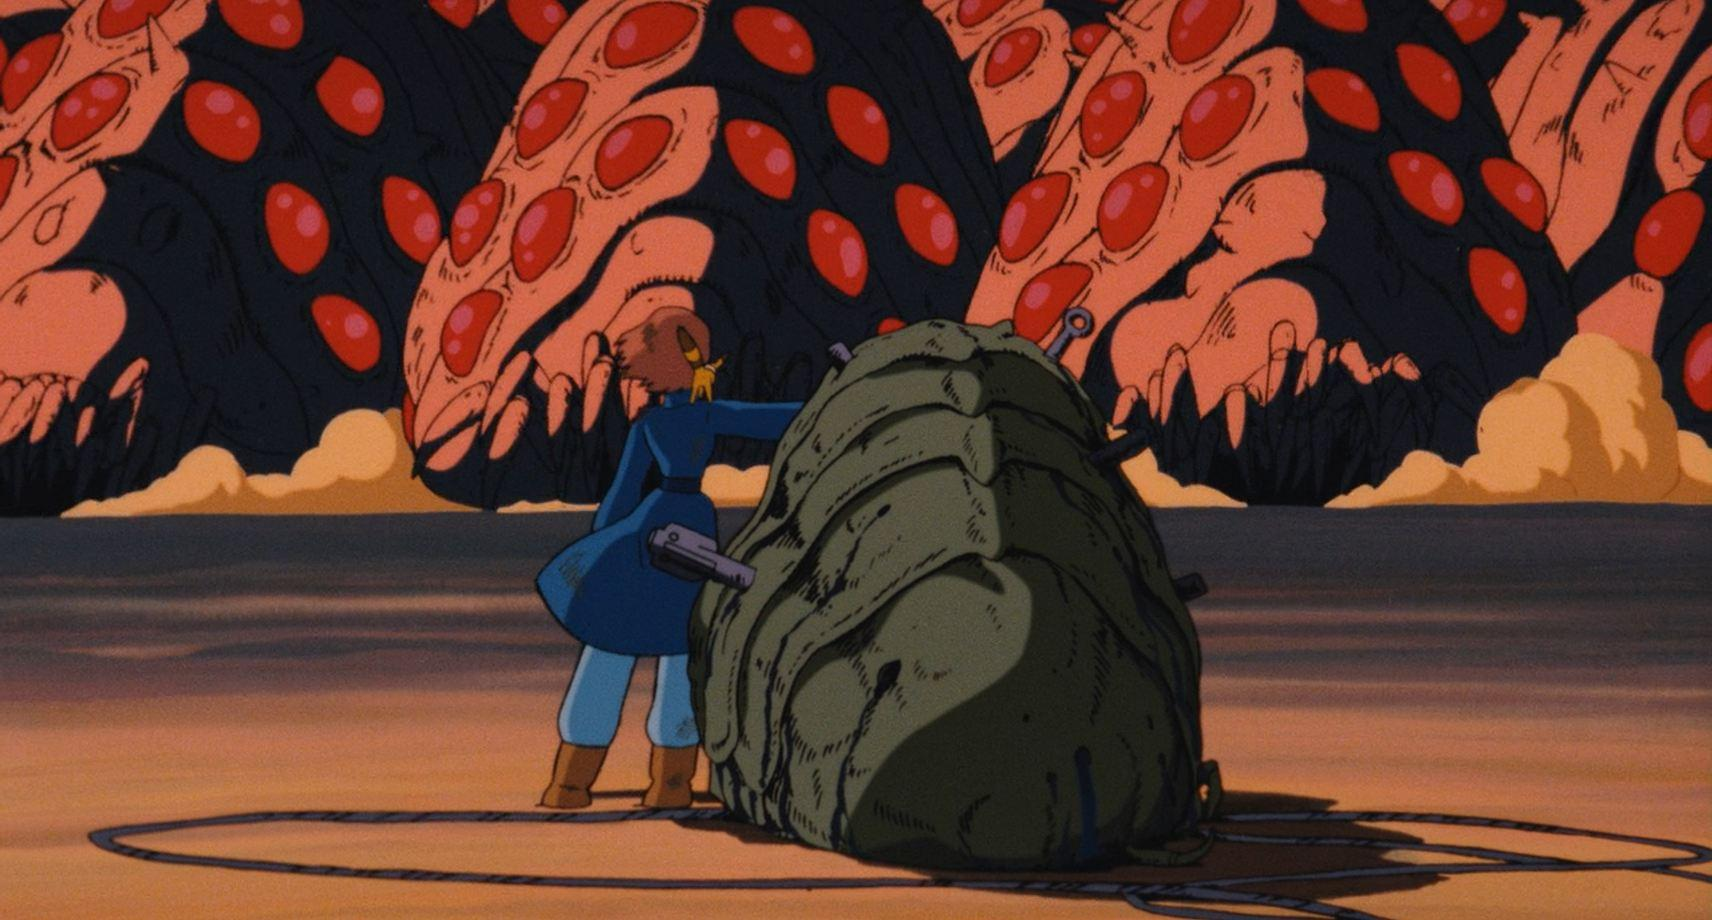 Nausicaa stands in the path of the sea of Ohms in Nausicaa in the Valley of the Wind (1984)